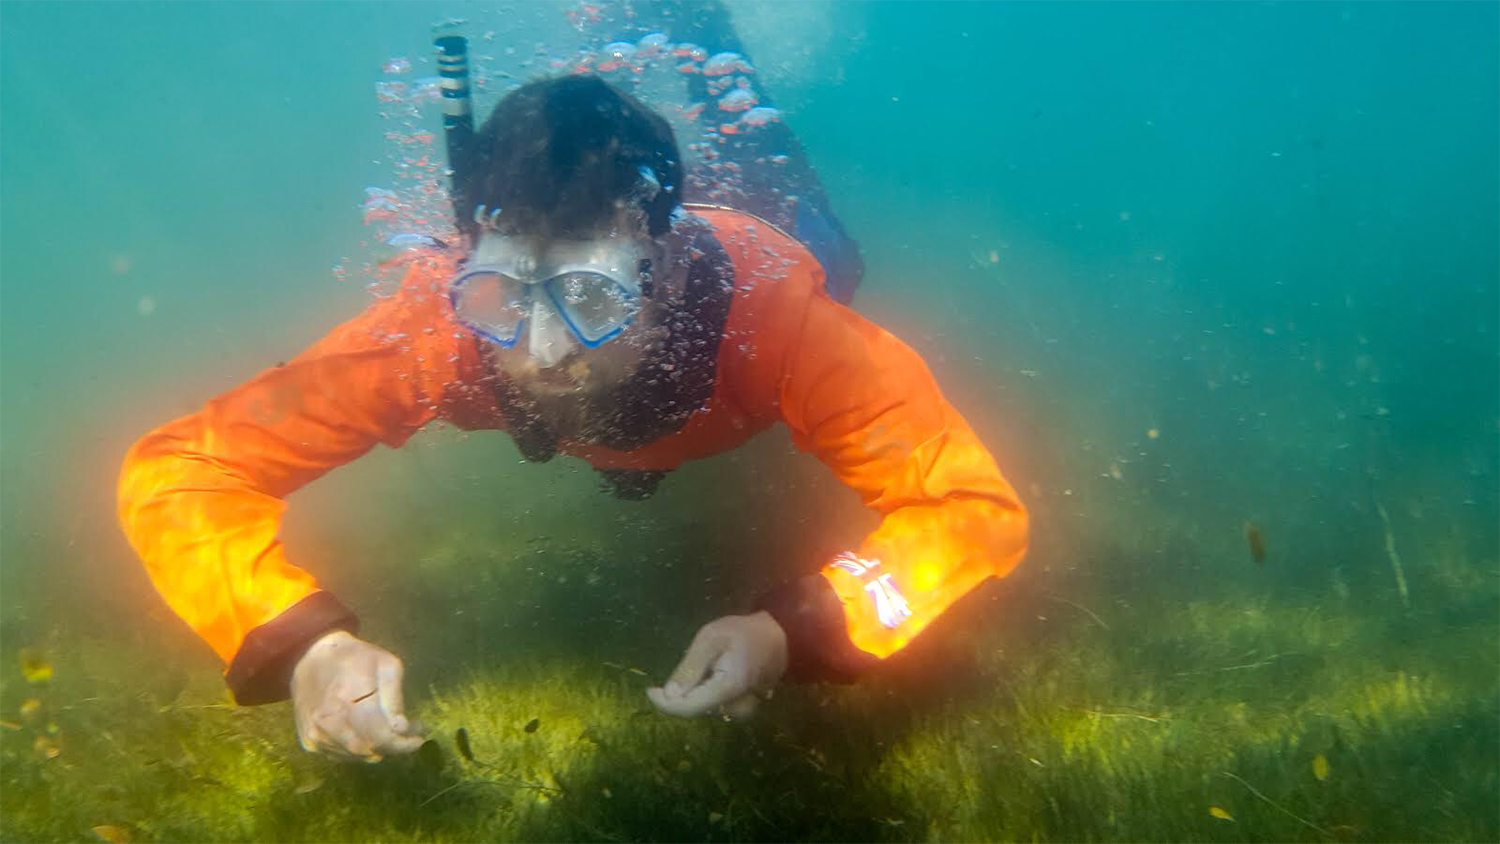 diver in orange shirt collects weed samples